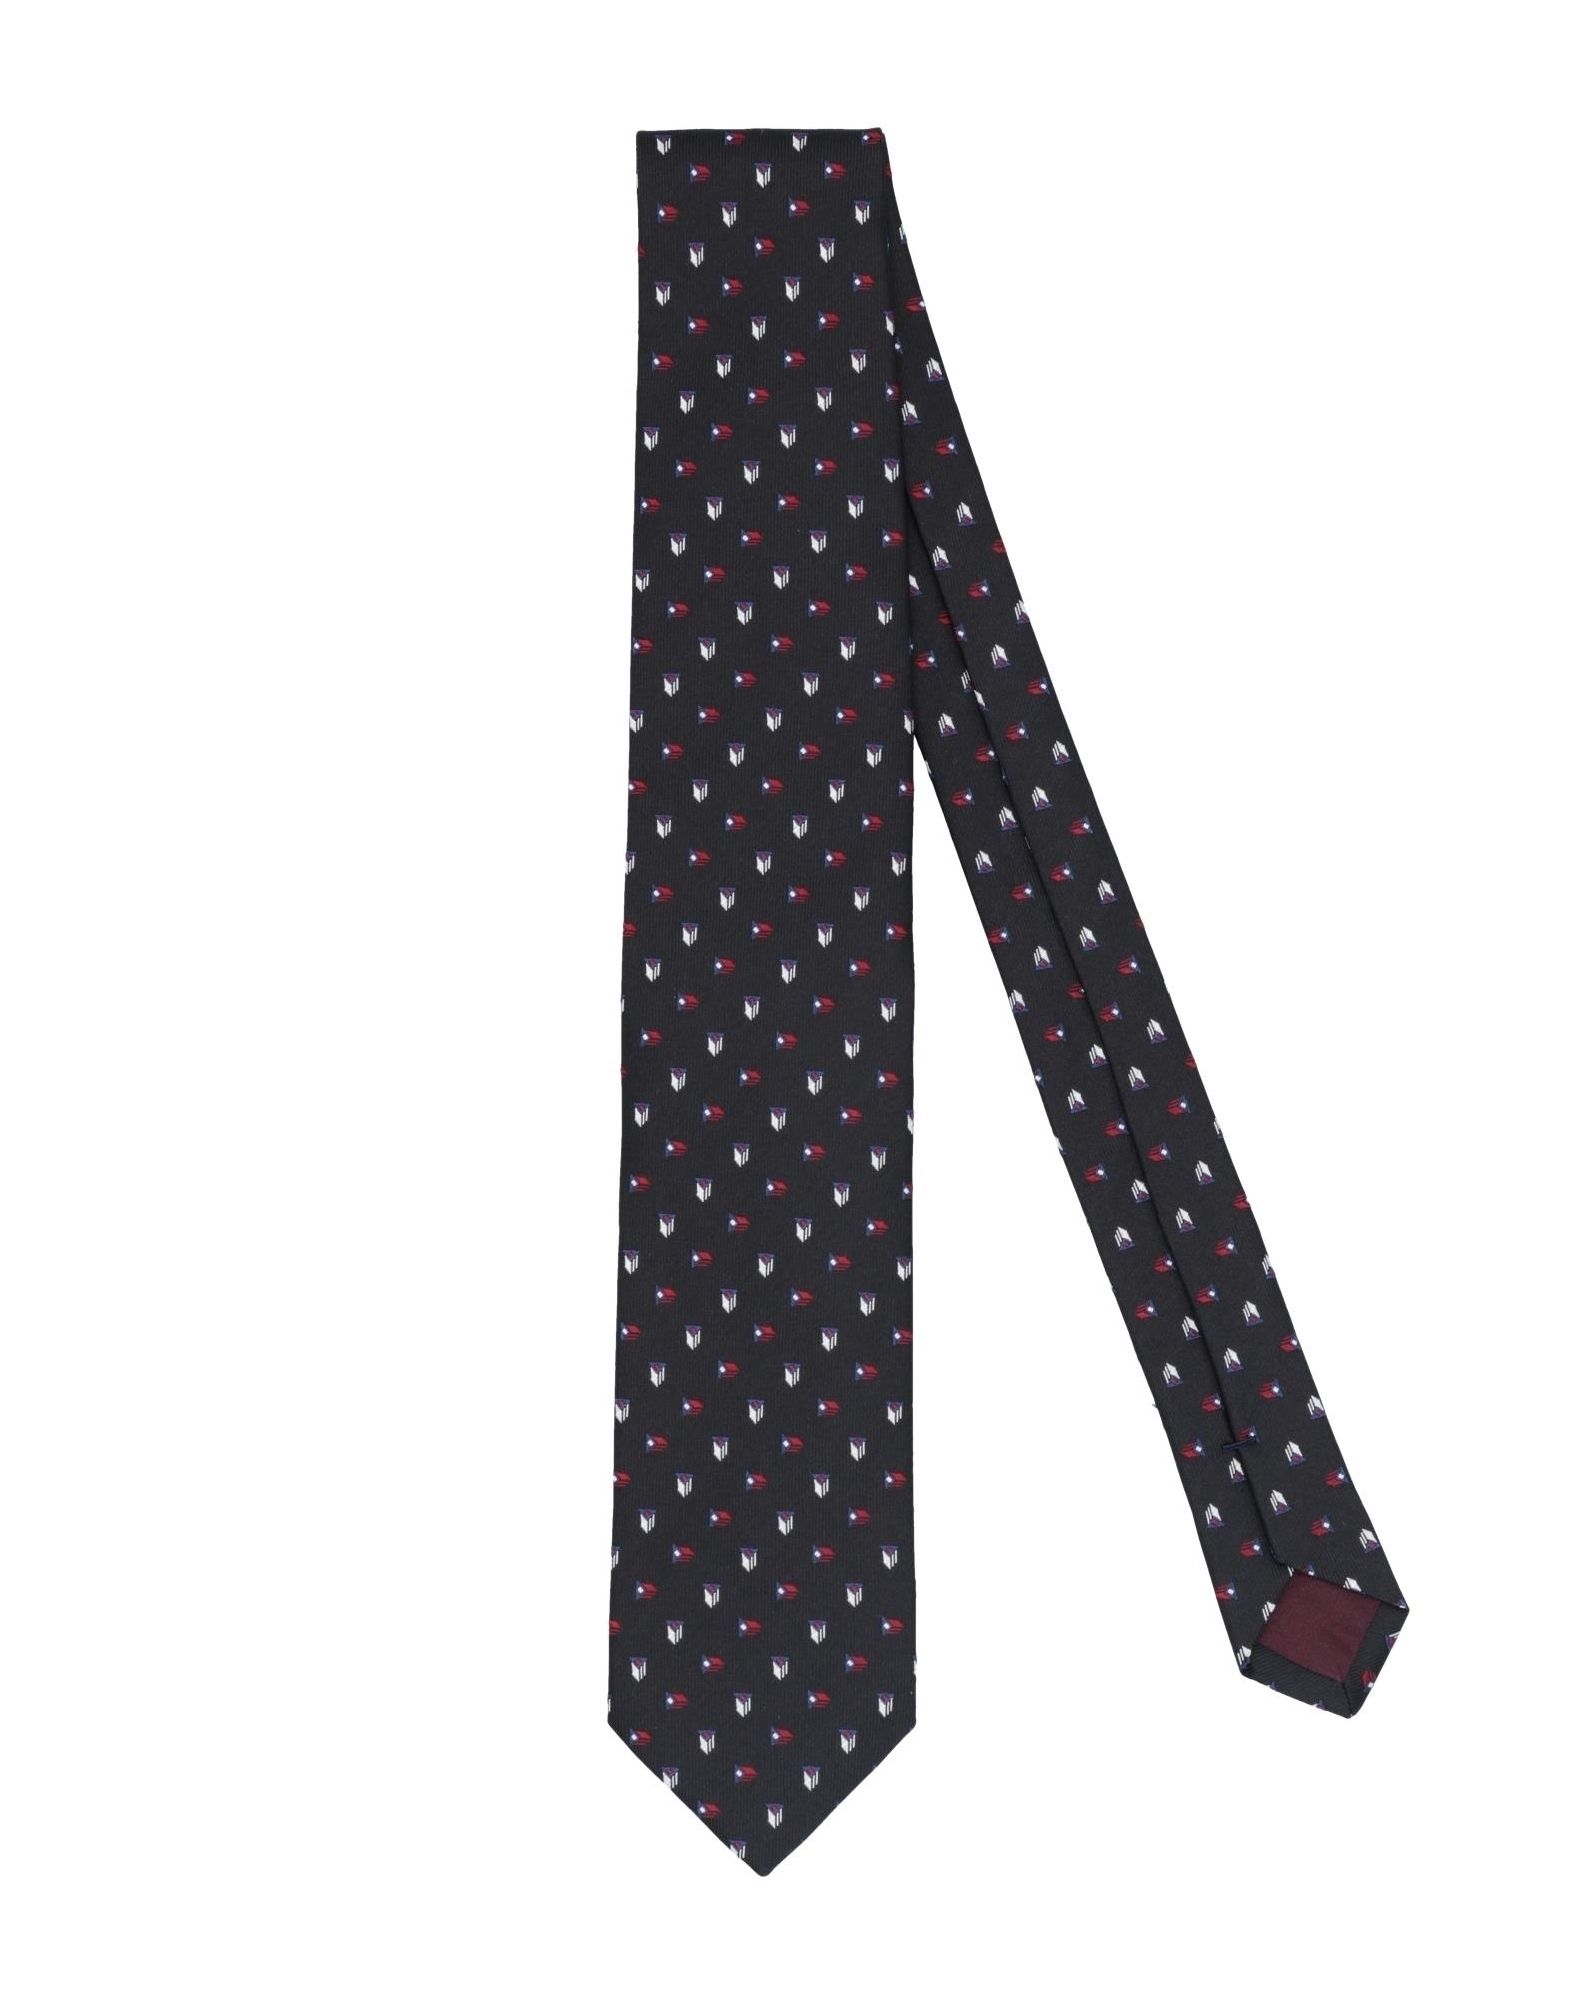 86c390841a9c Prada Tie - Men Prada Ties online on YOOX Lithuania - 46643480QO